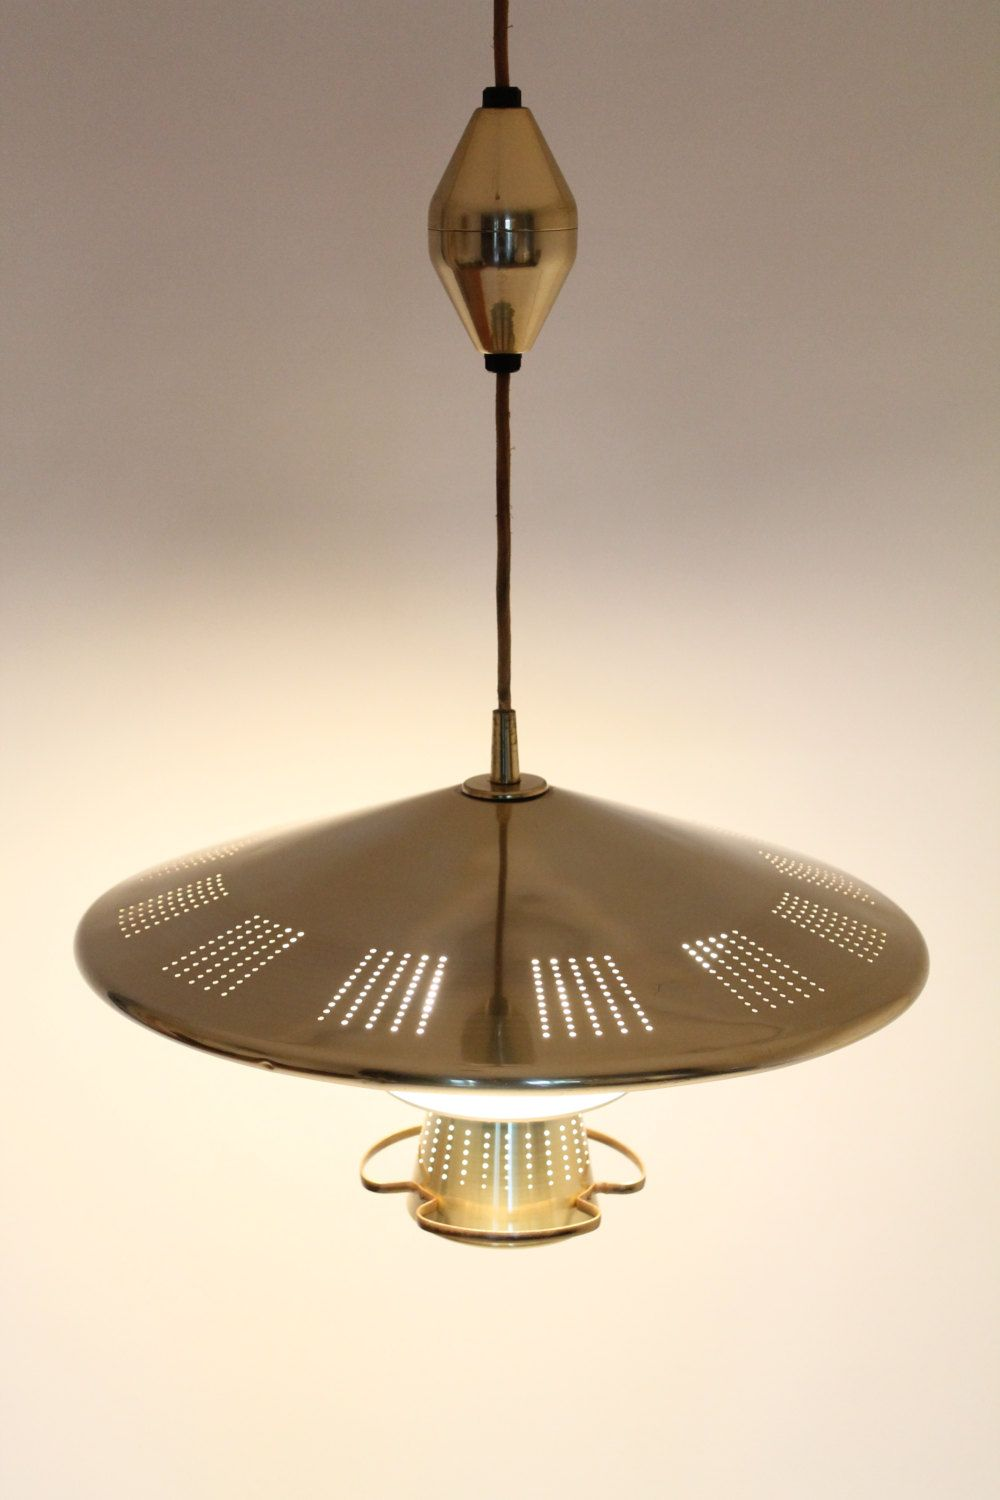 21 Inches Brass Plated Saucer Pull Down Chandelier 4 Lights Retractable From Im Pendant Light Fixtures Mid Century Modern Lighting Pendant Candle Pendant Light